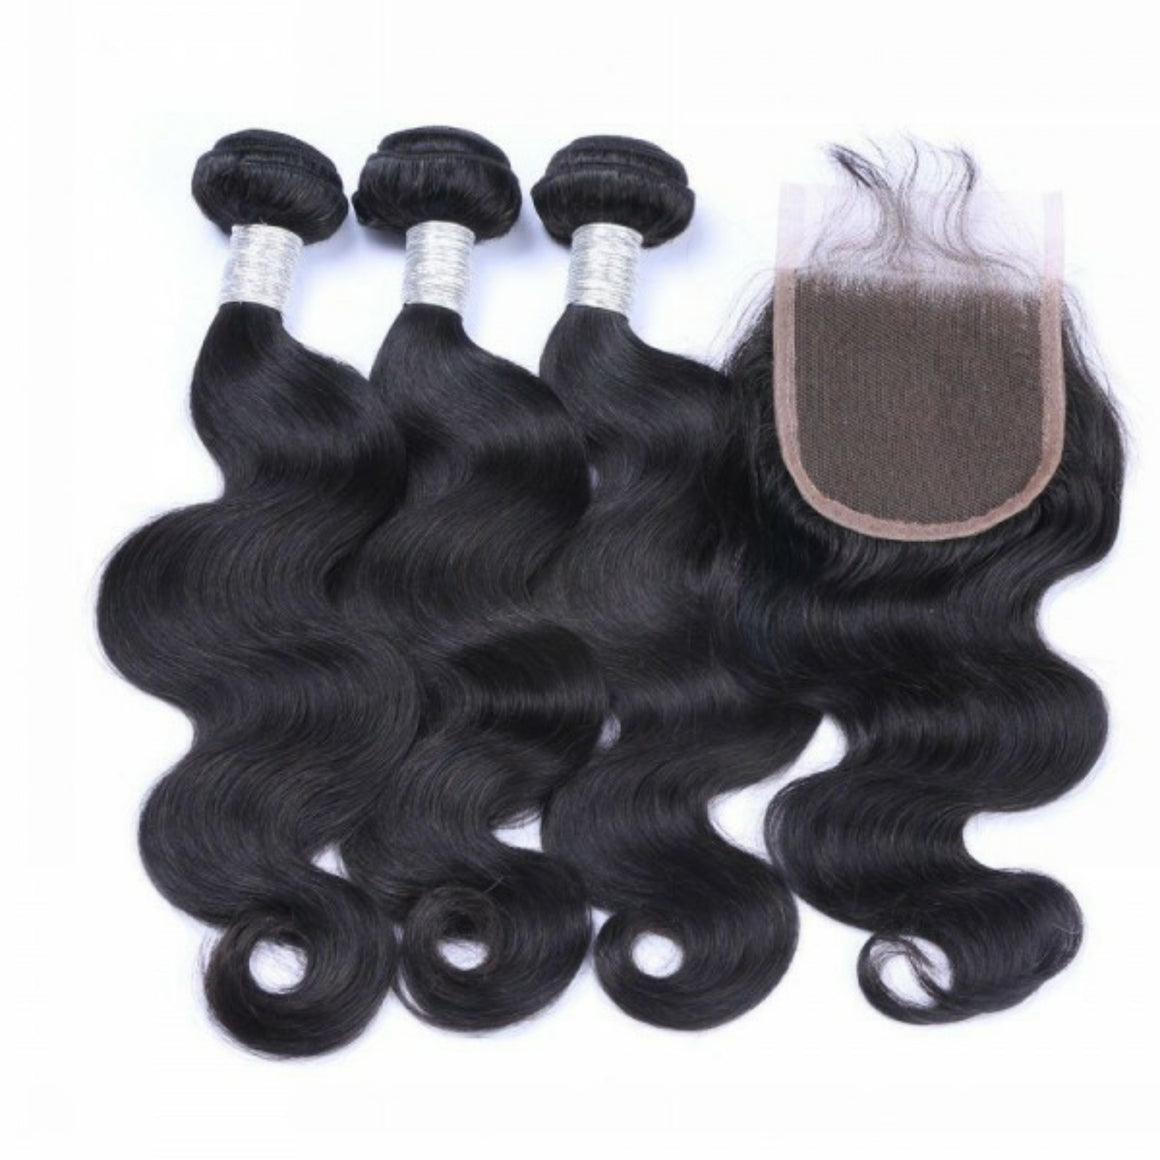 Three bundles of silky Body wave hair and a 4 by 4 Three Part closure, pre-plucked with baby hair, grade 10a - mslhair